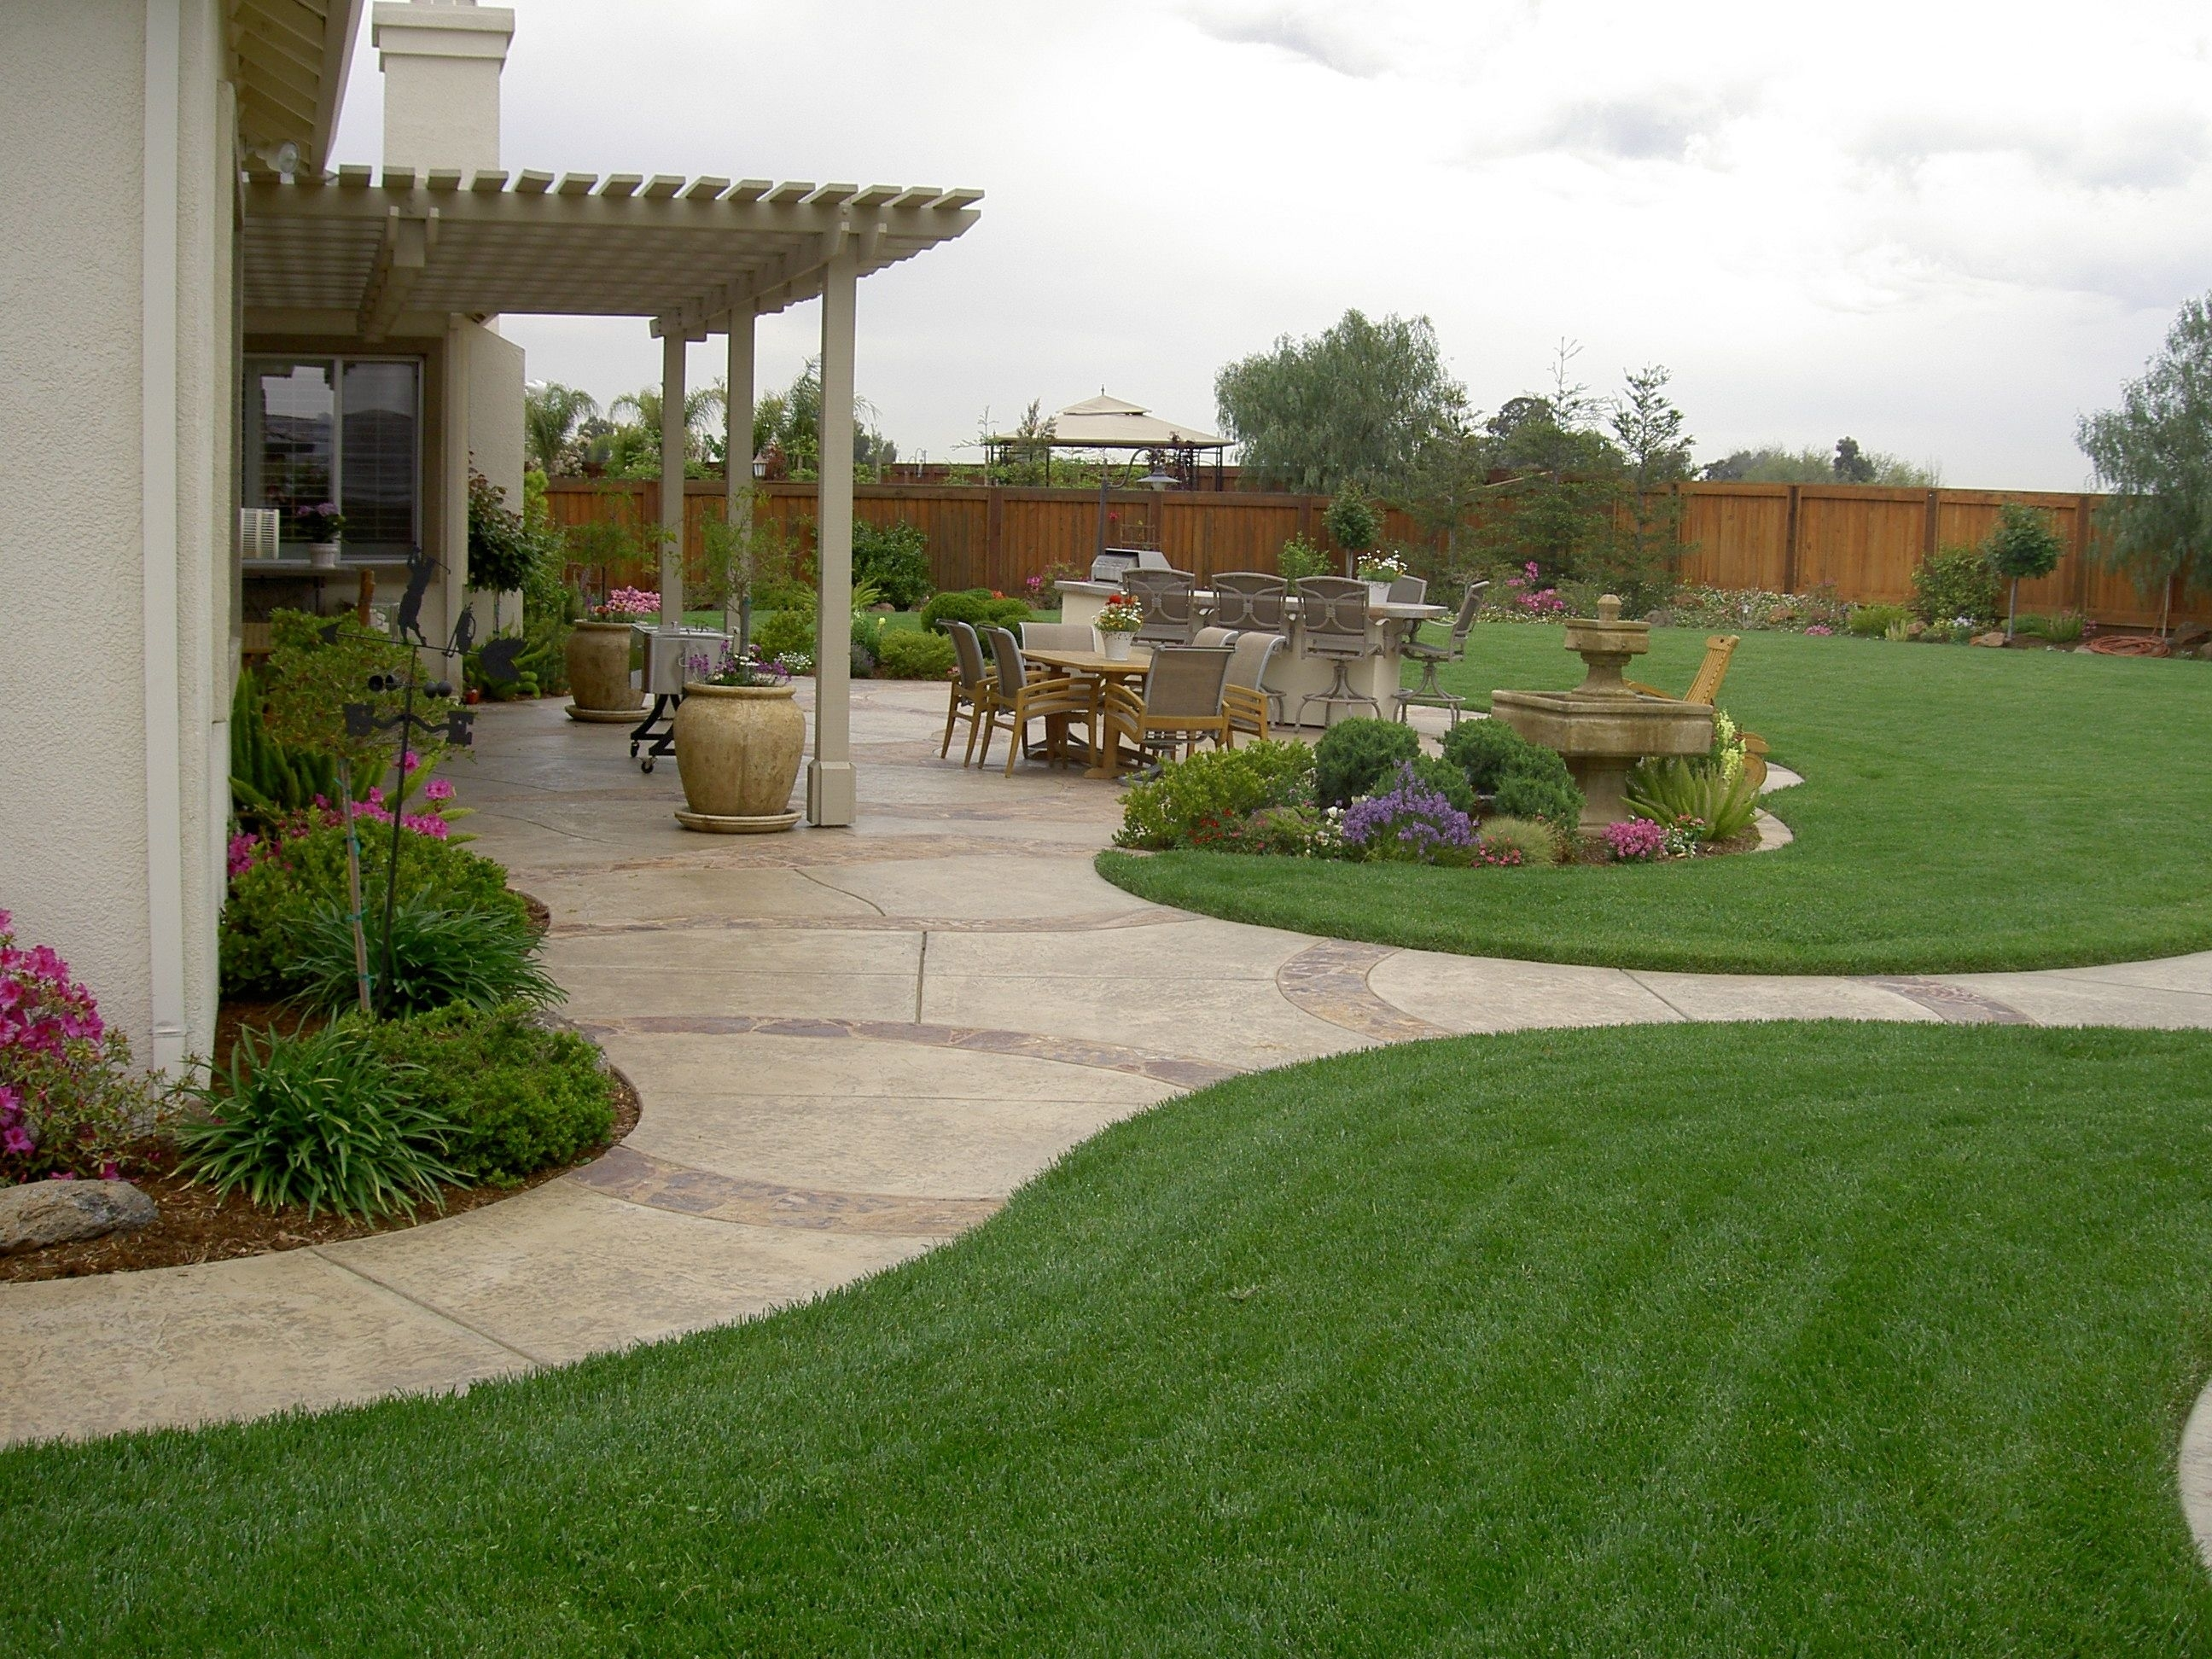 20 Awesome Landscaping Ideas For Your Backyard | Pinterest throughout Large Backyard Garden Ideas